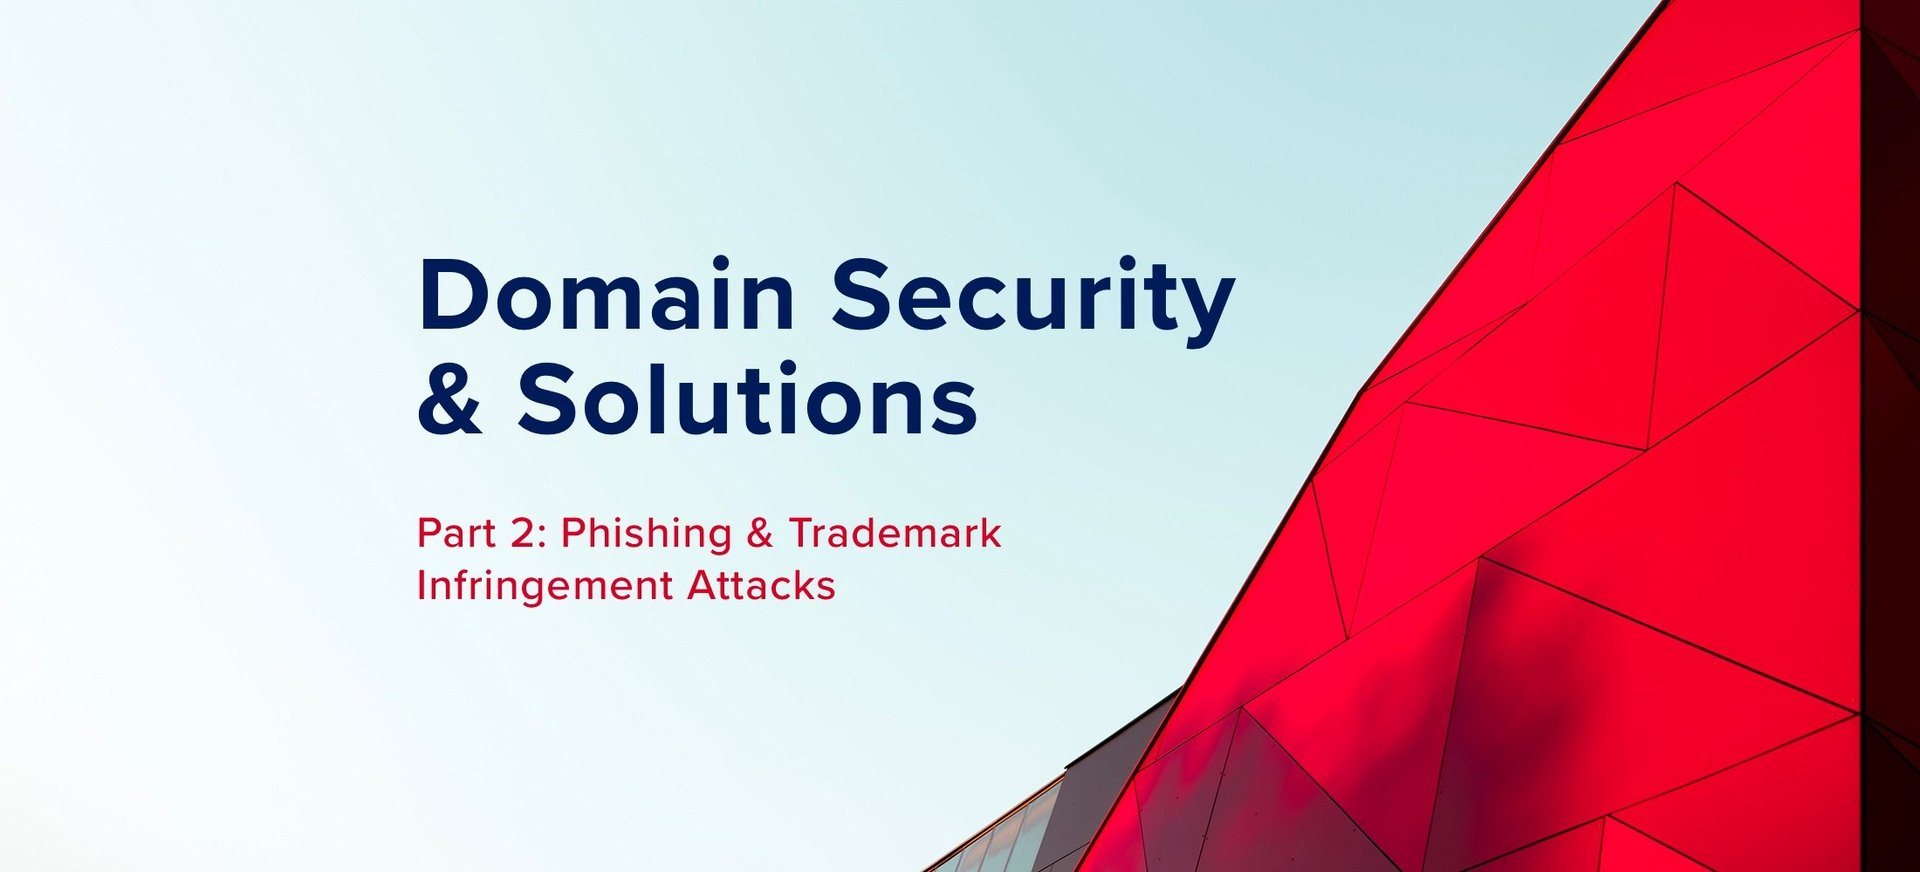 Domain Security & Solutions, Part 2: Phishing & Trademark Infringement Attacks.